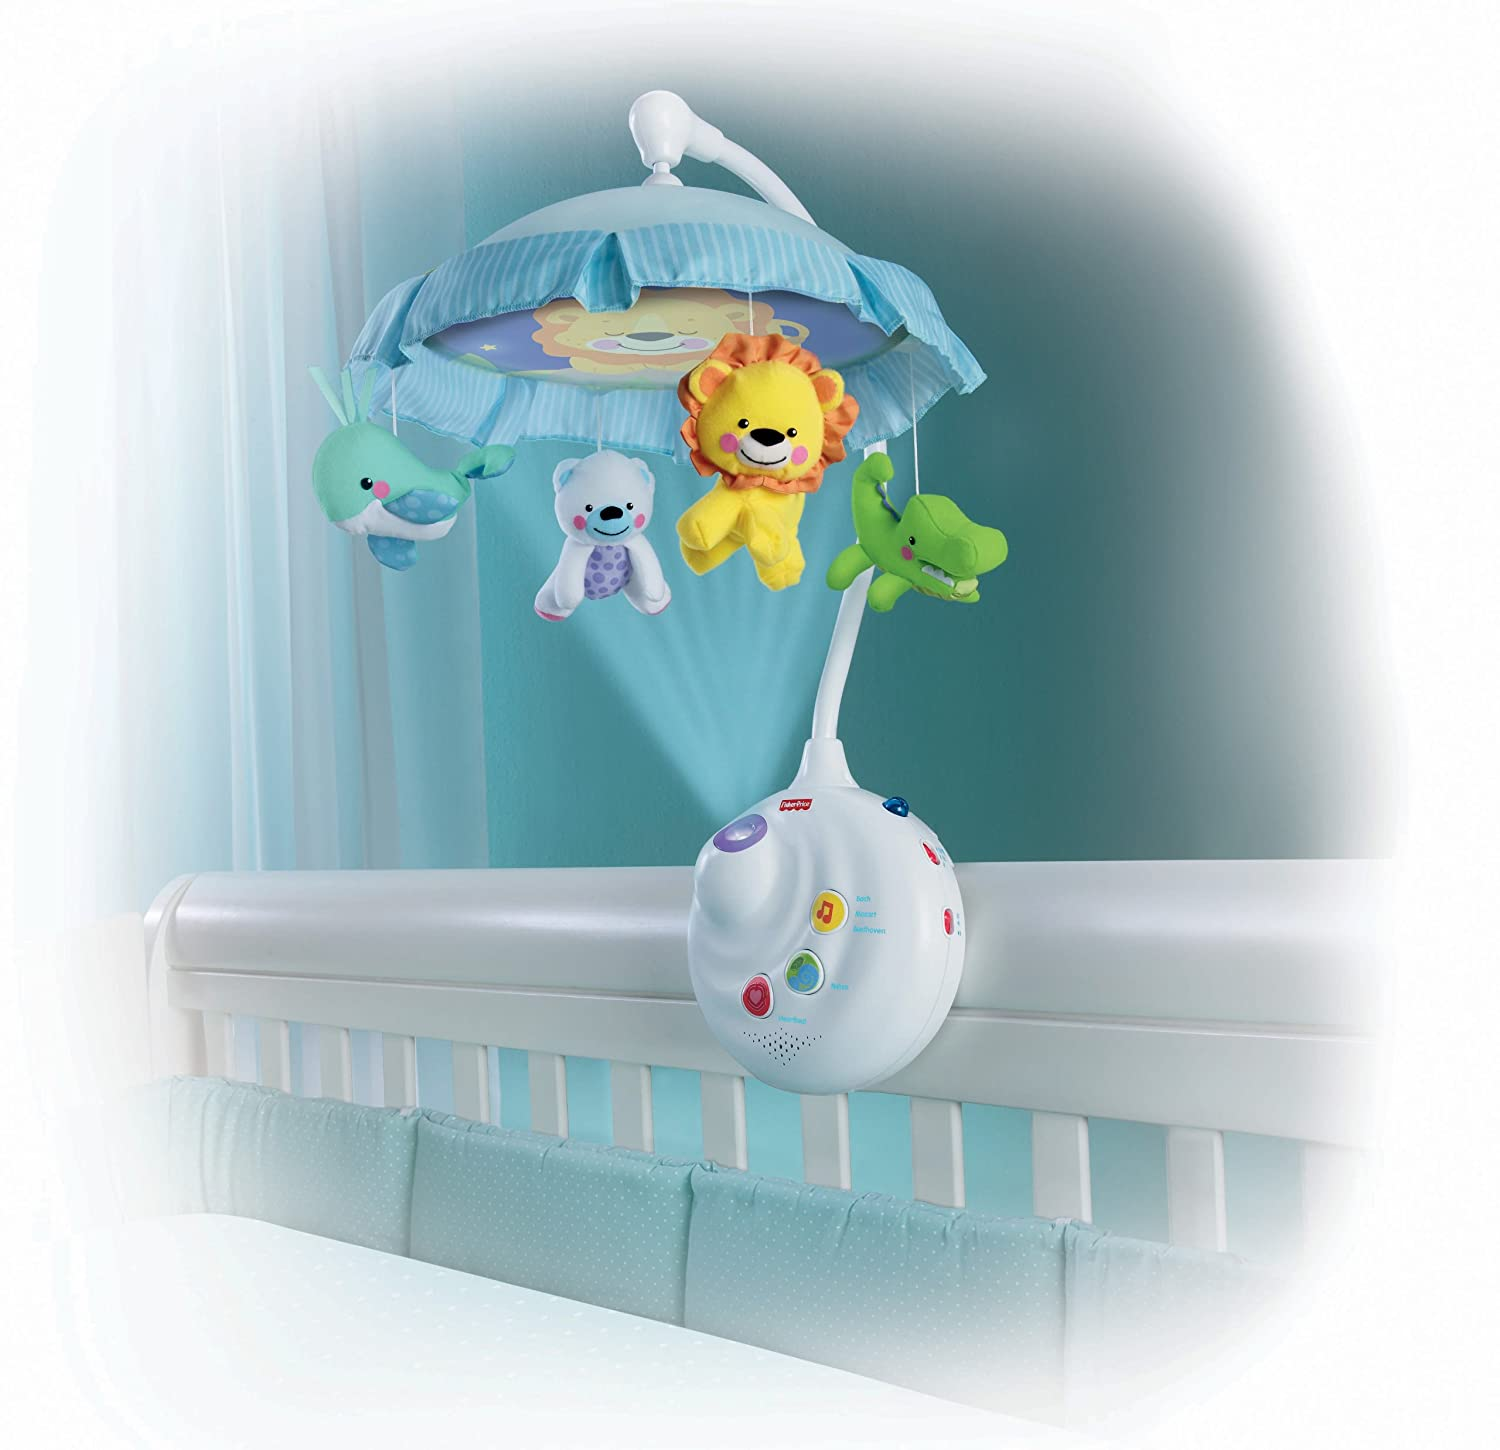 Crib mobiles bad for babies - Amazon Com Fisher Price Precious Planet 2 In 1 Projection Mobile Crib Toys Baby